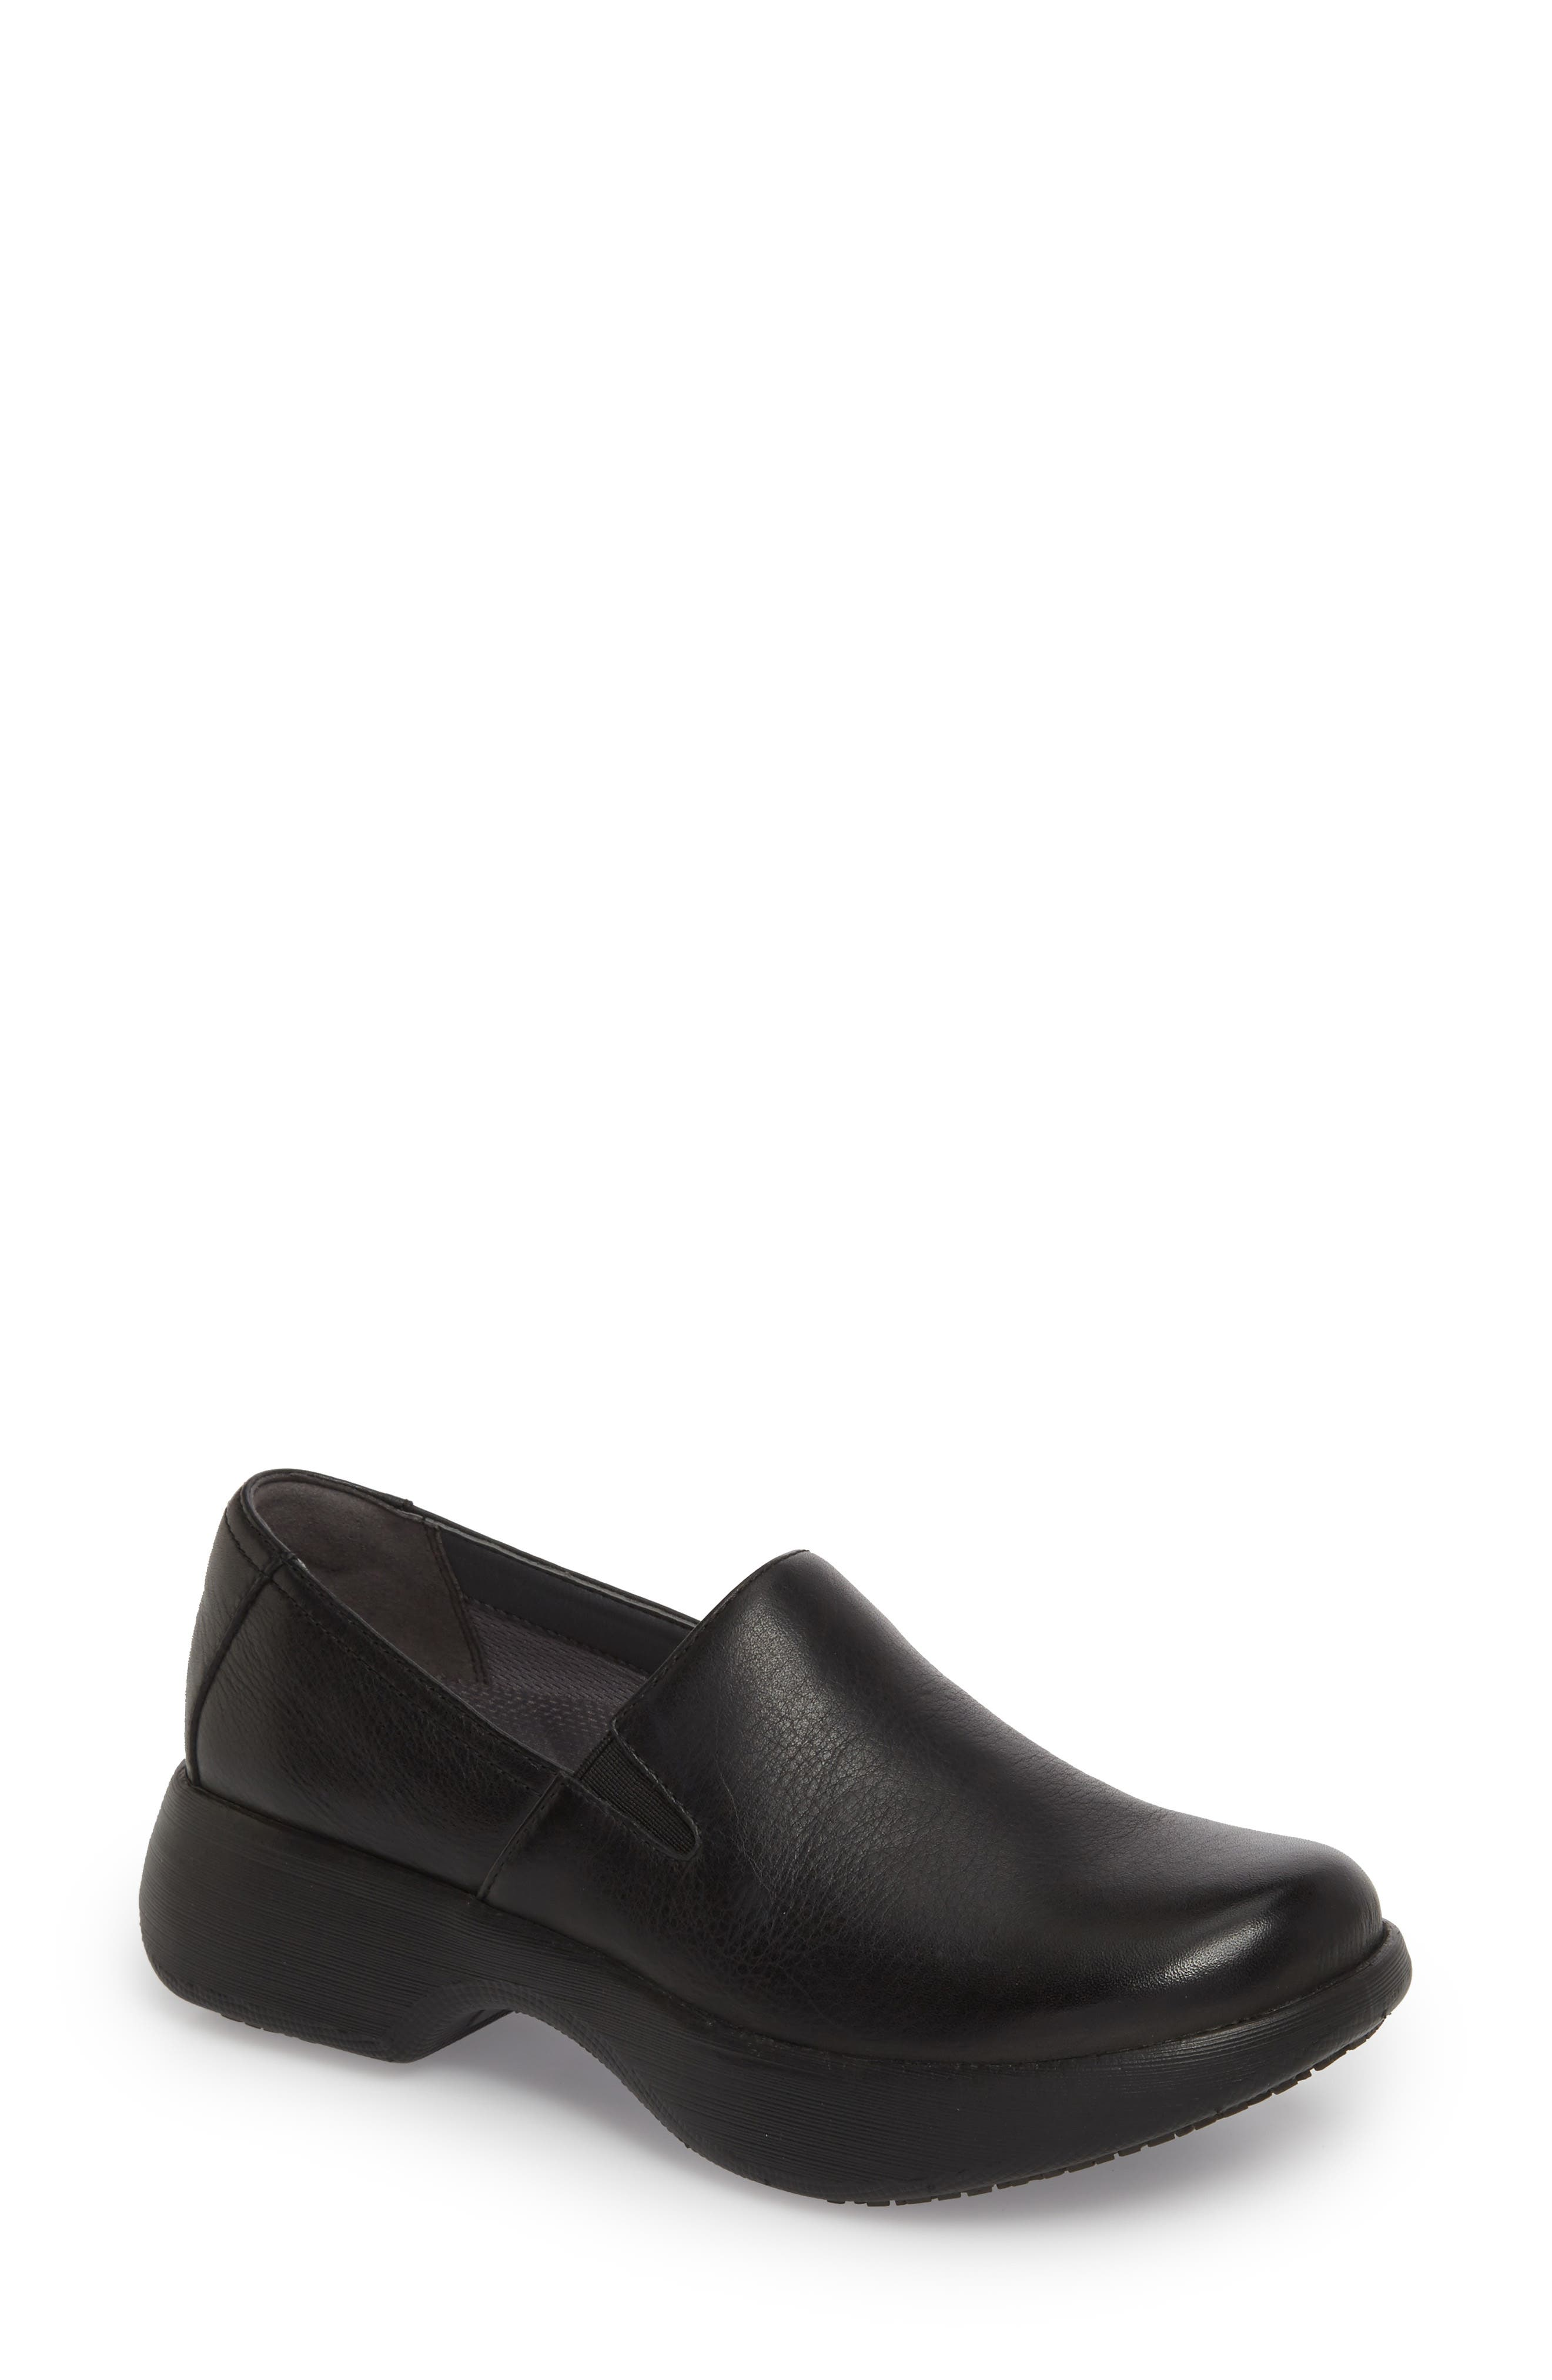 Winona Slip-On Clog,                             Main thumbnail 1, color,                             BLACK MILLED LEATHER